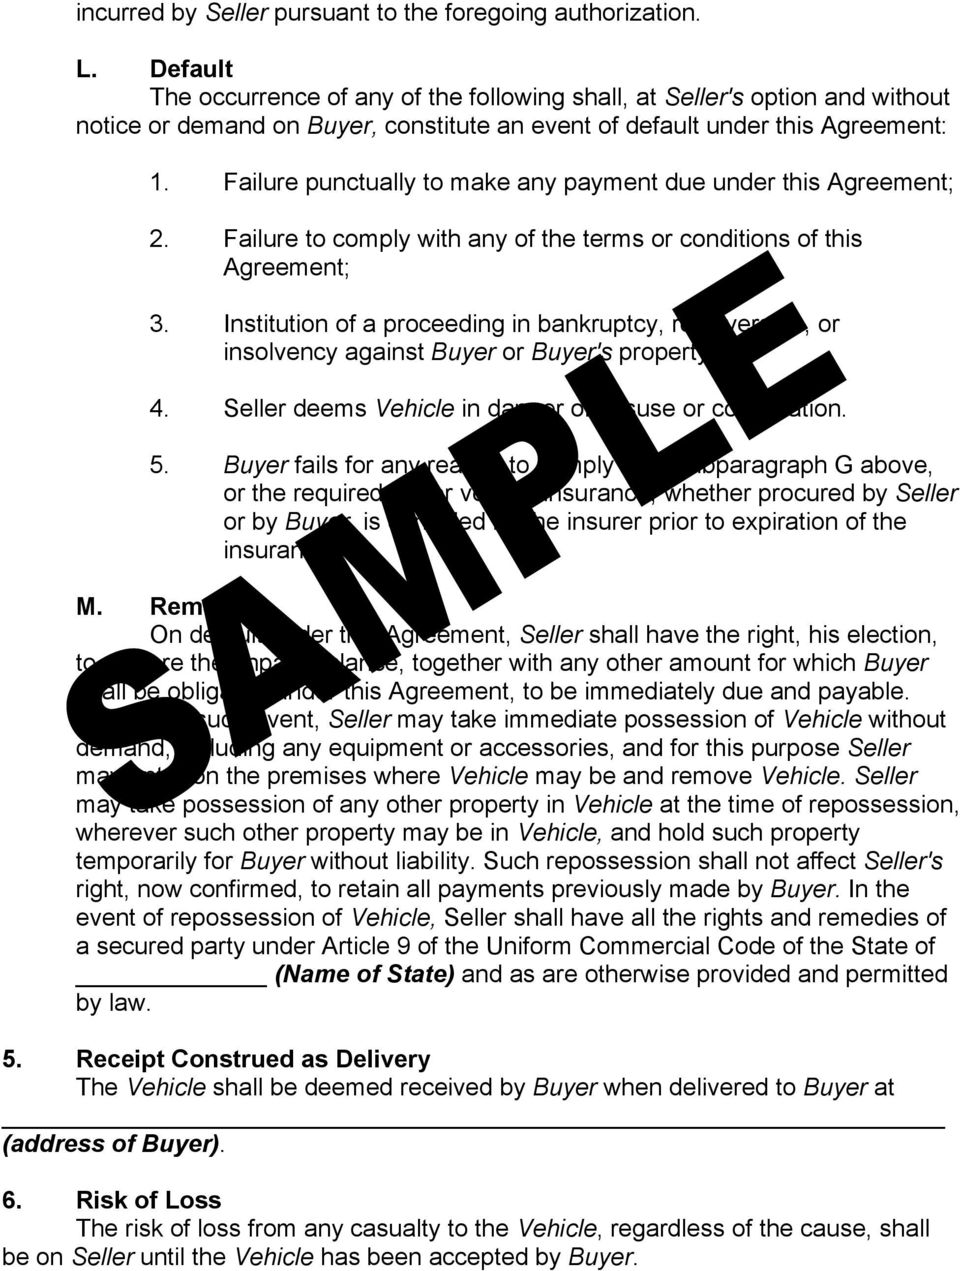 Failure punctually to make any payment due under this Agreement; 2. Failure to comply with any of the terms or conditions of this Agreement; 3.